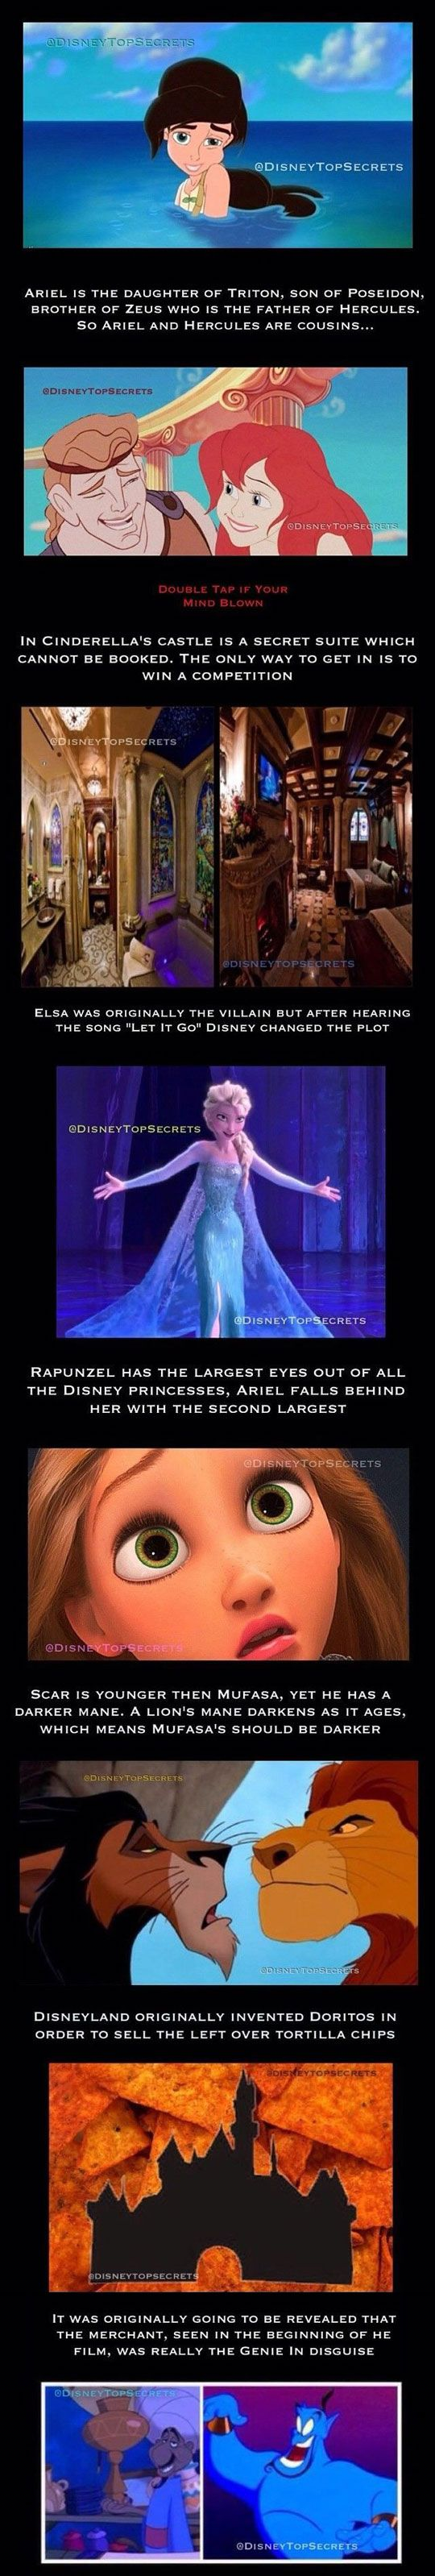 Amazing Disney Secrets